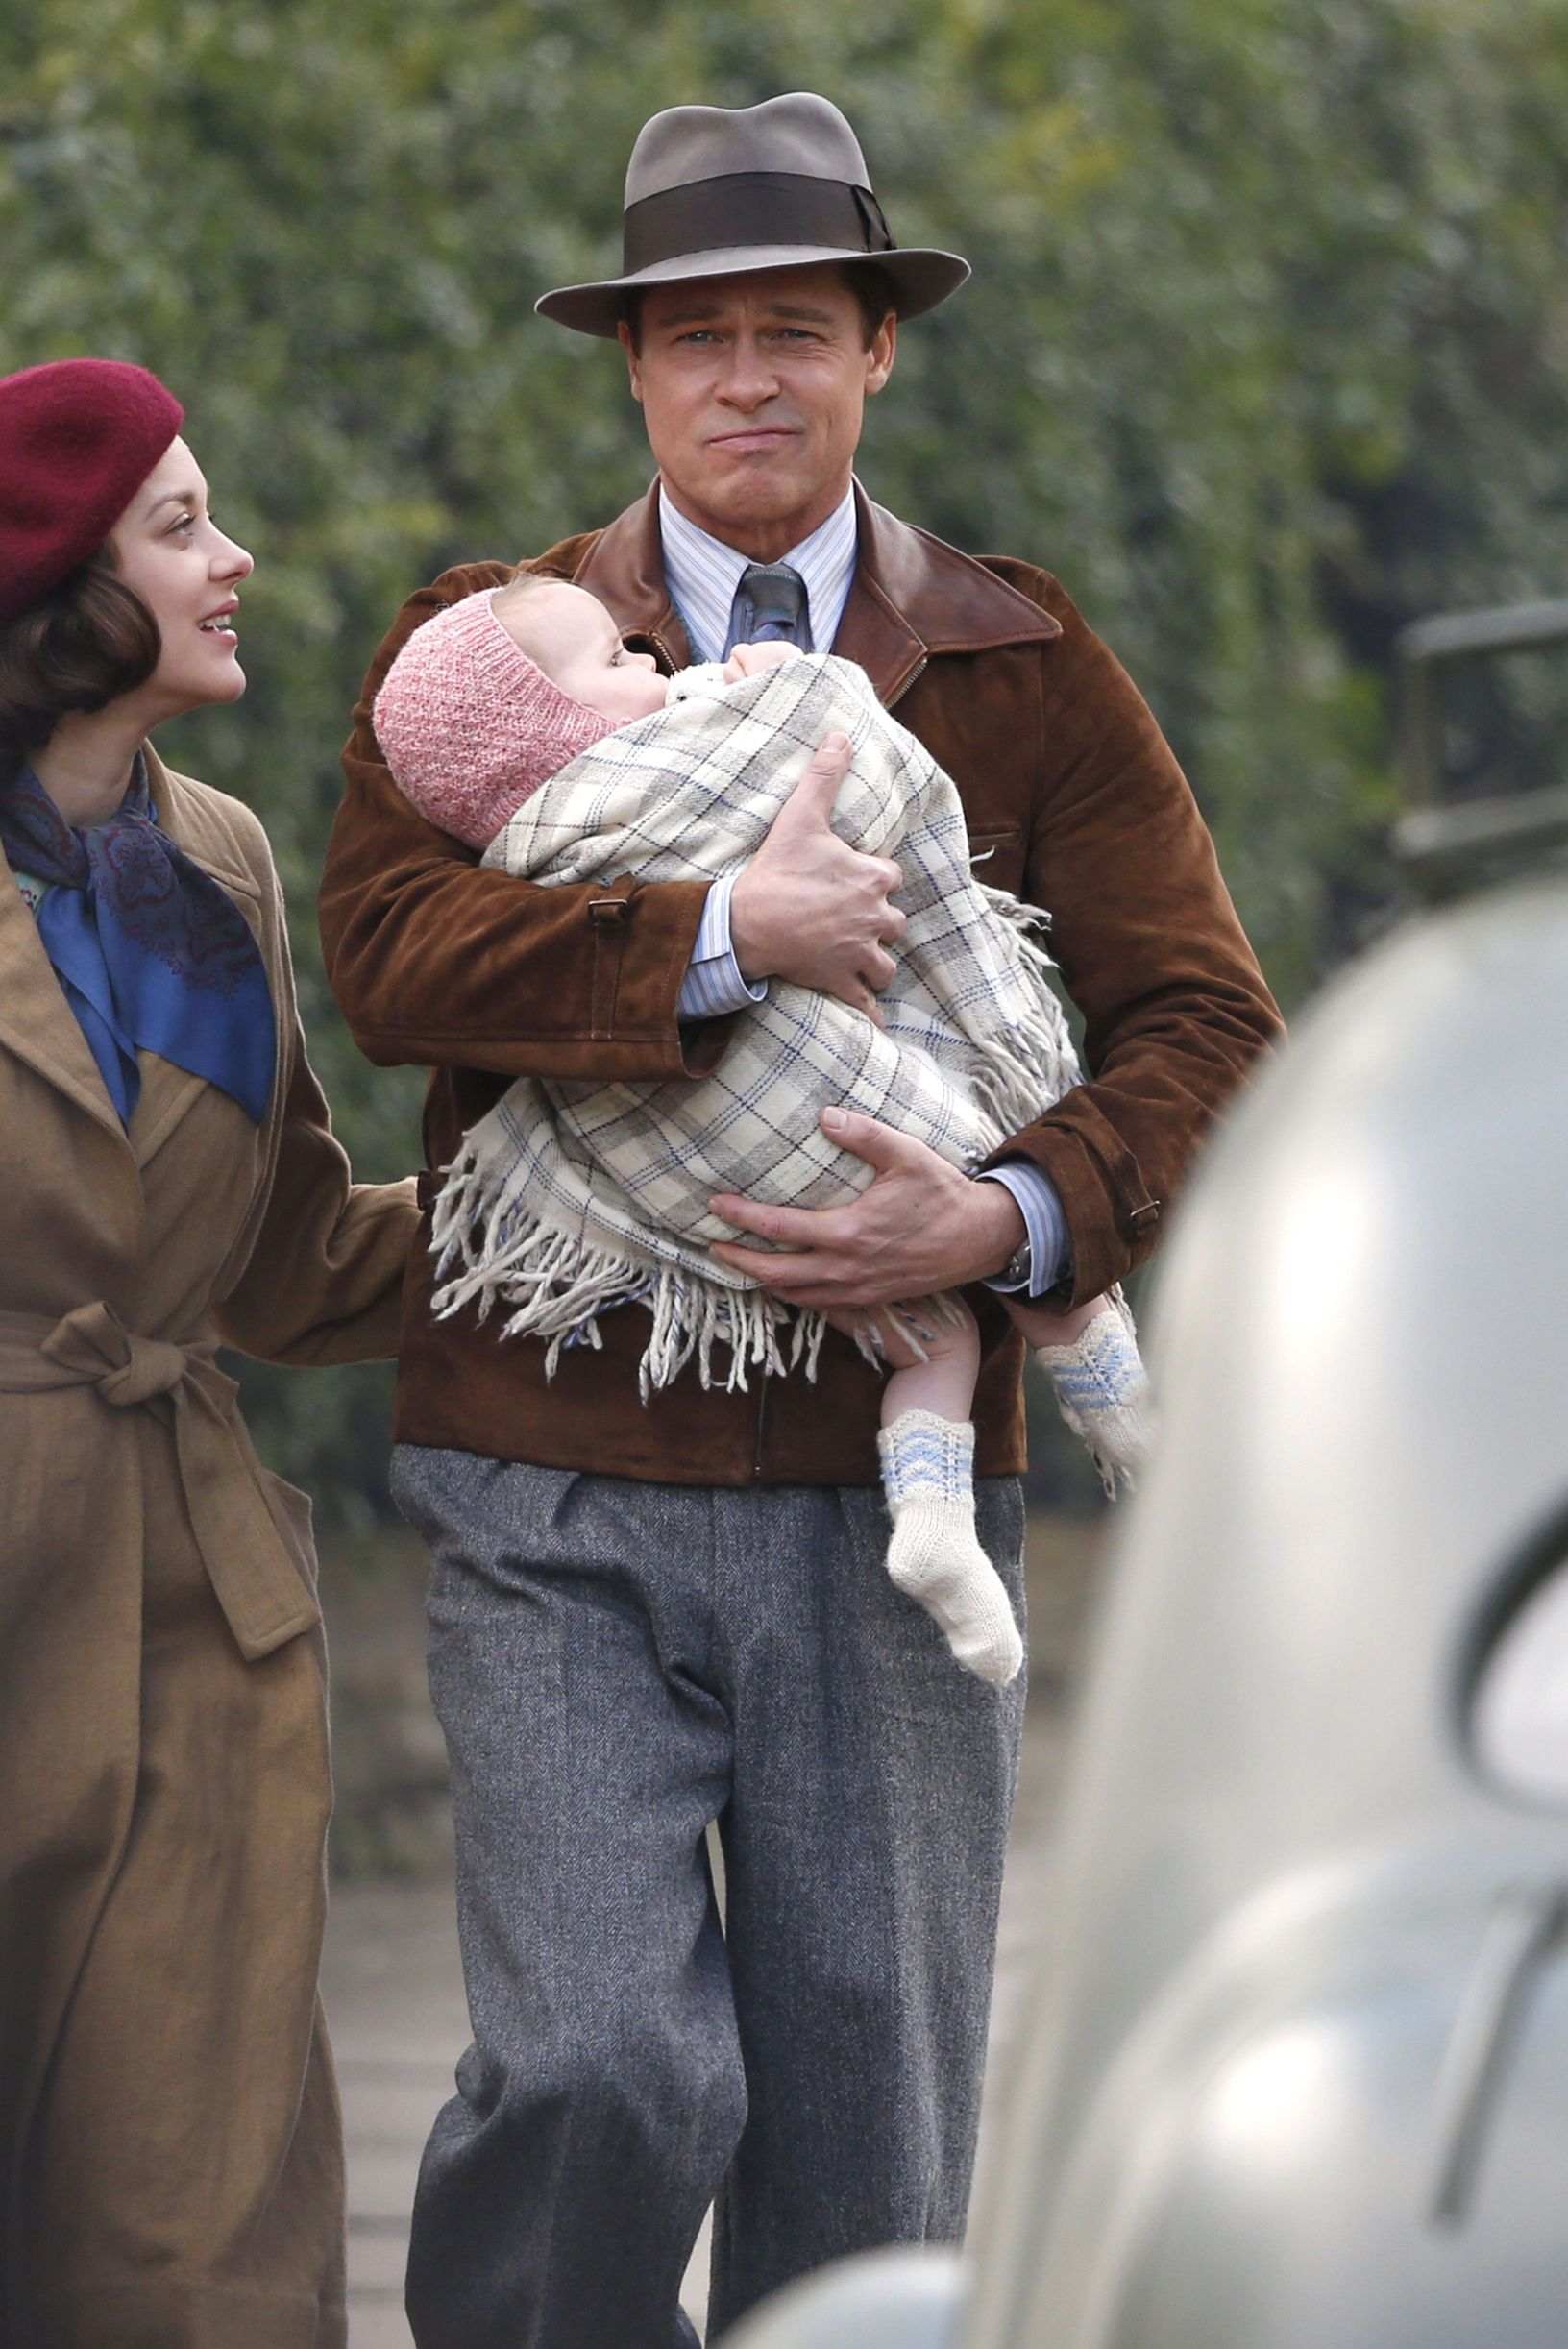 Brad Pitt Plays A Doting Parent With Marion Cotillard On Set In